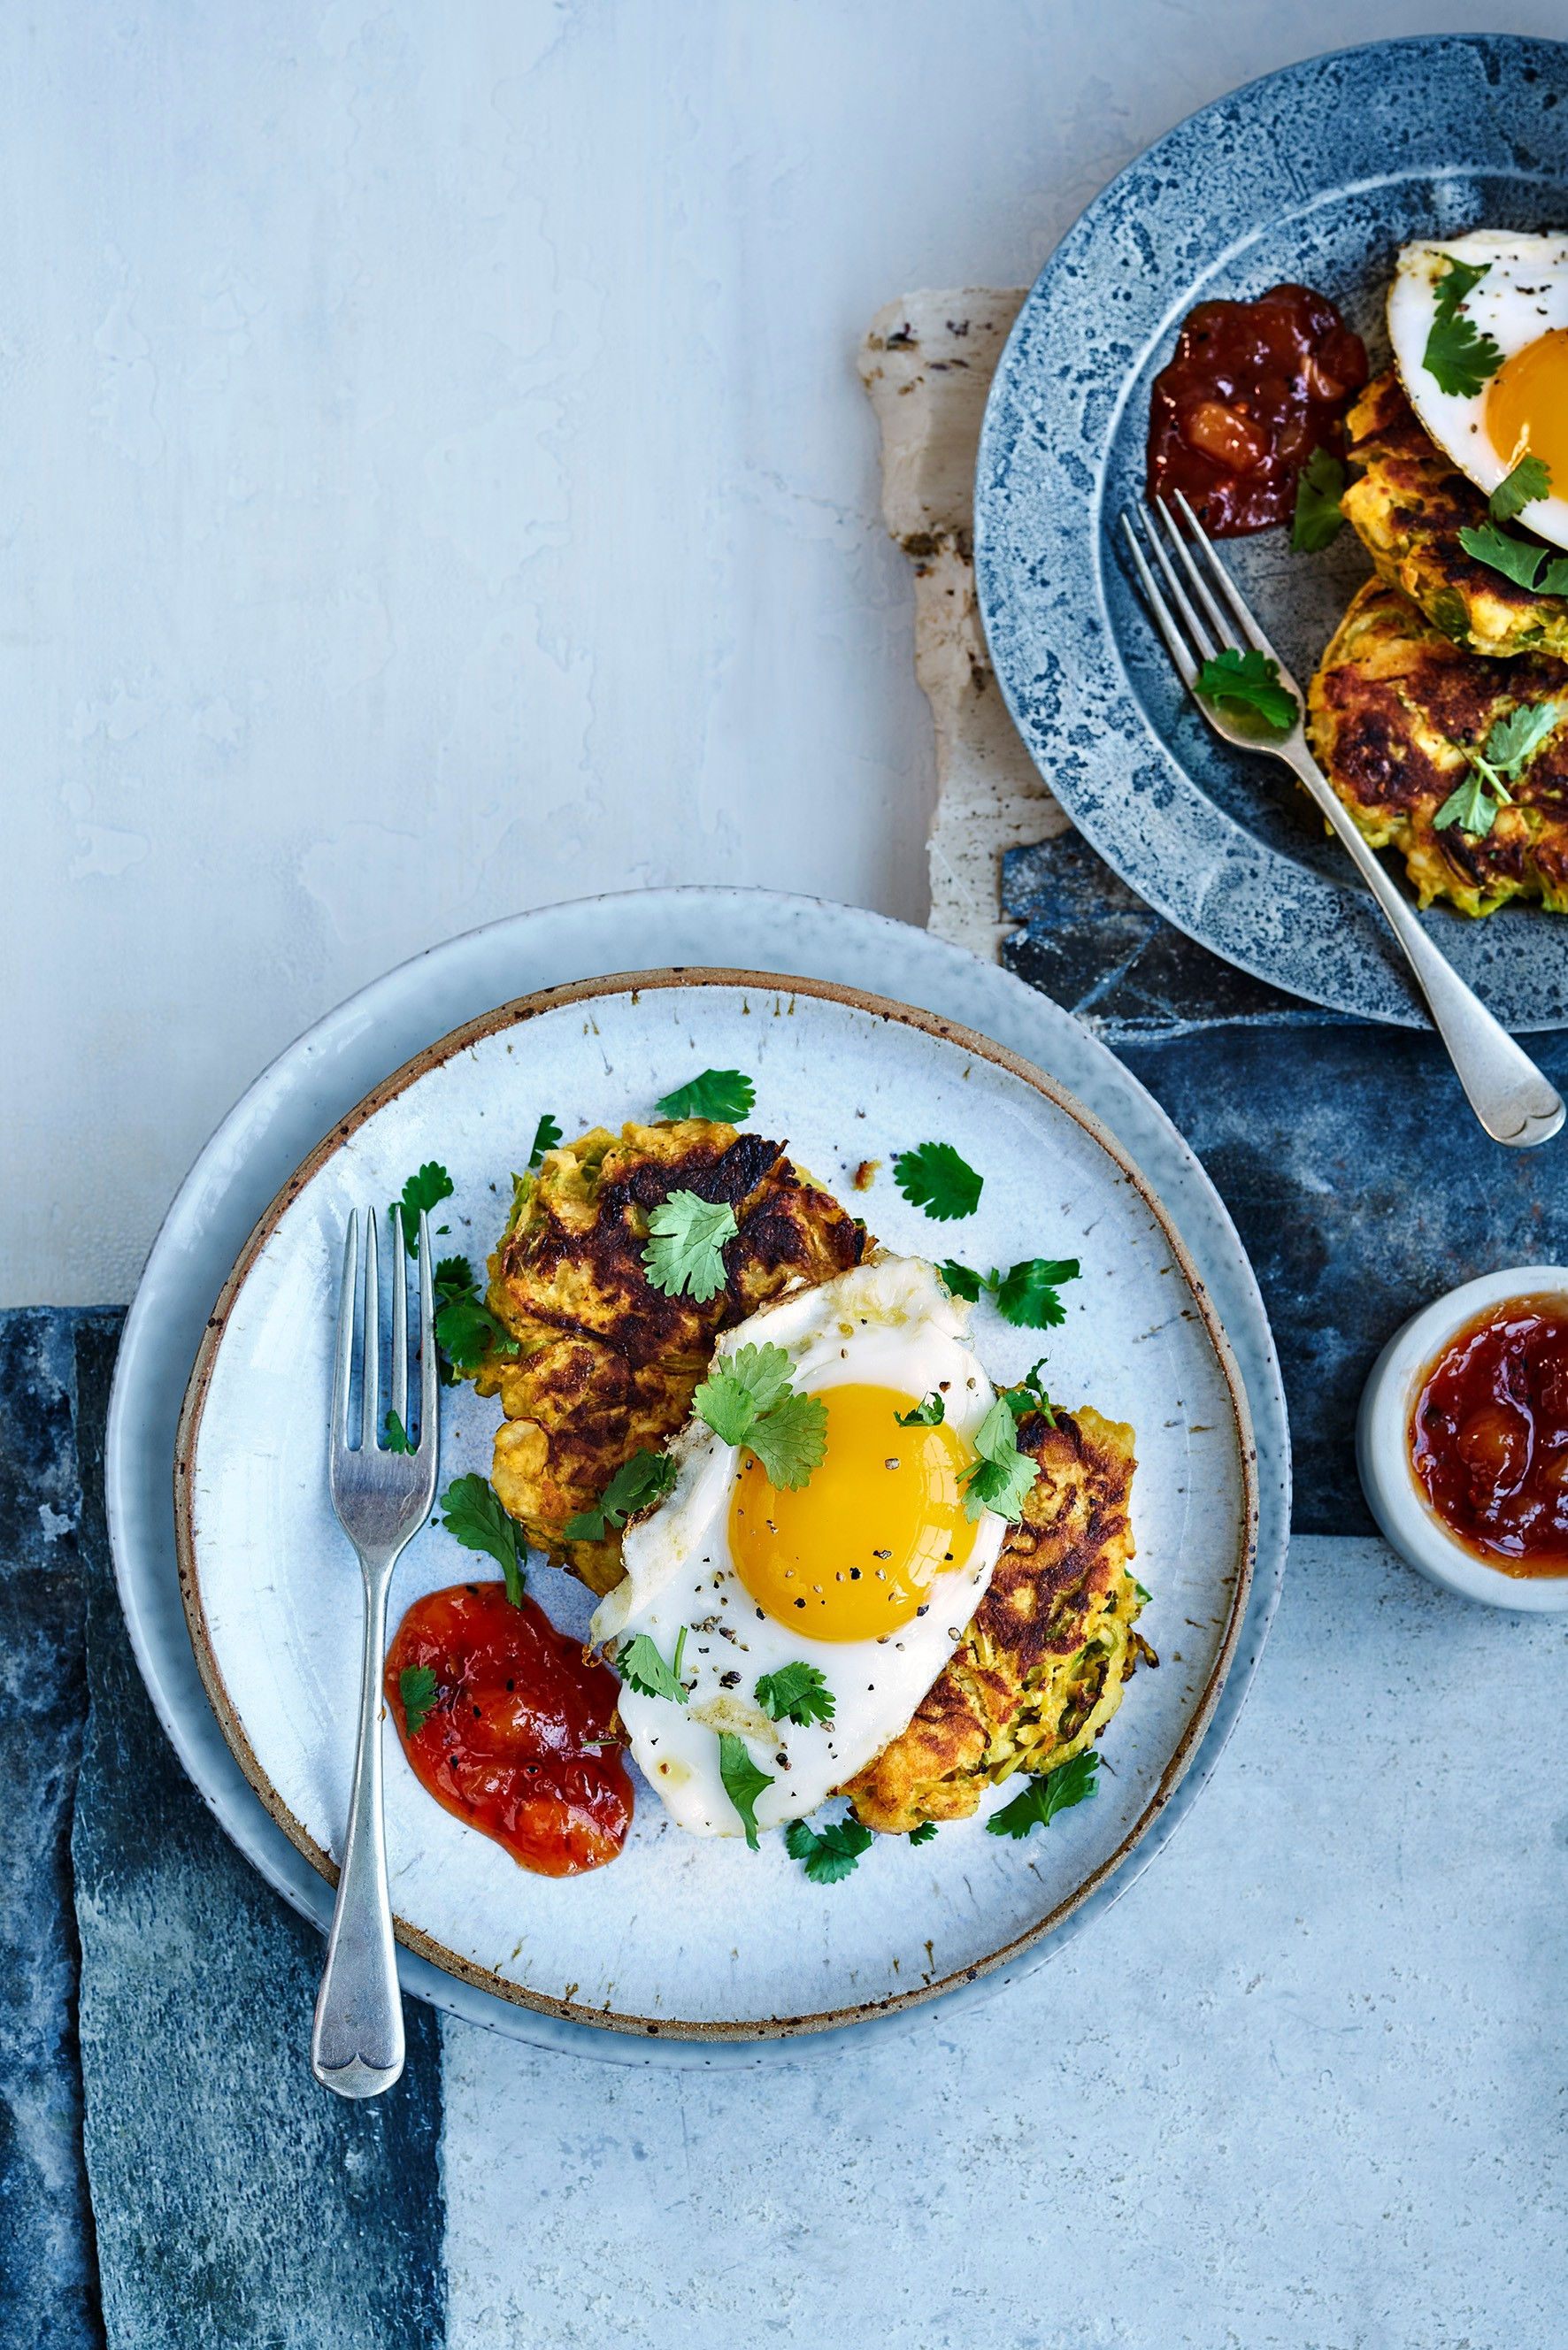 Spiced sprout fritters with duck eggs